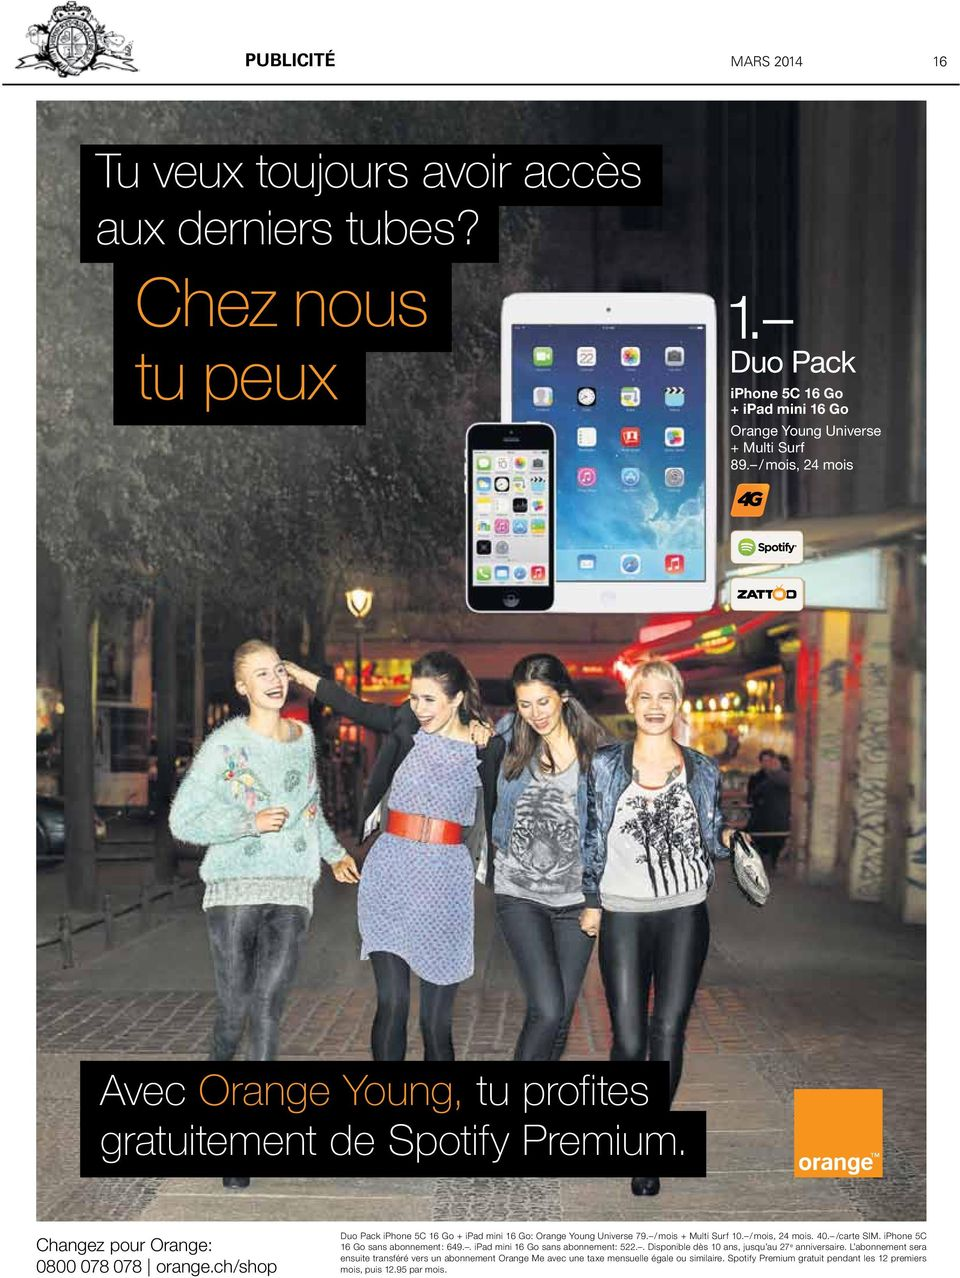 ch/shop Duo Pack iphone 5C 16 Go + ipad mini 16 Go: Orange Young Universe 79. / mois + Multi Surf 10. / mois, 24 mois. 40. /carte SIM. iphone 5C 16 Go sans abonnement: 649.